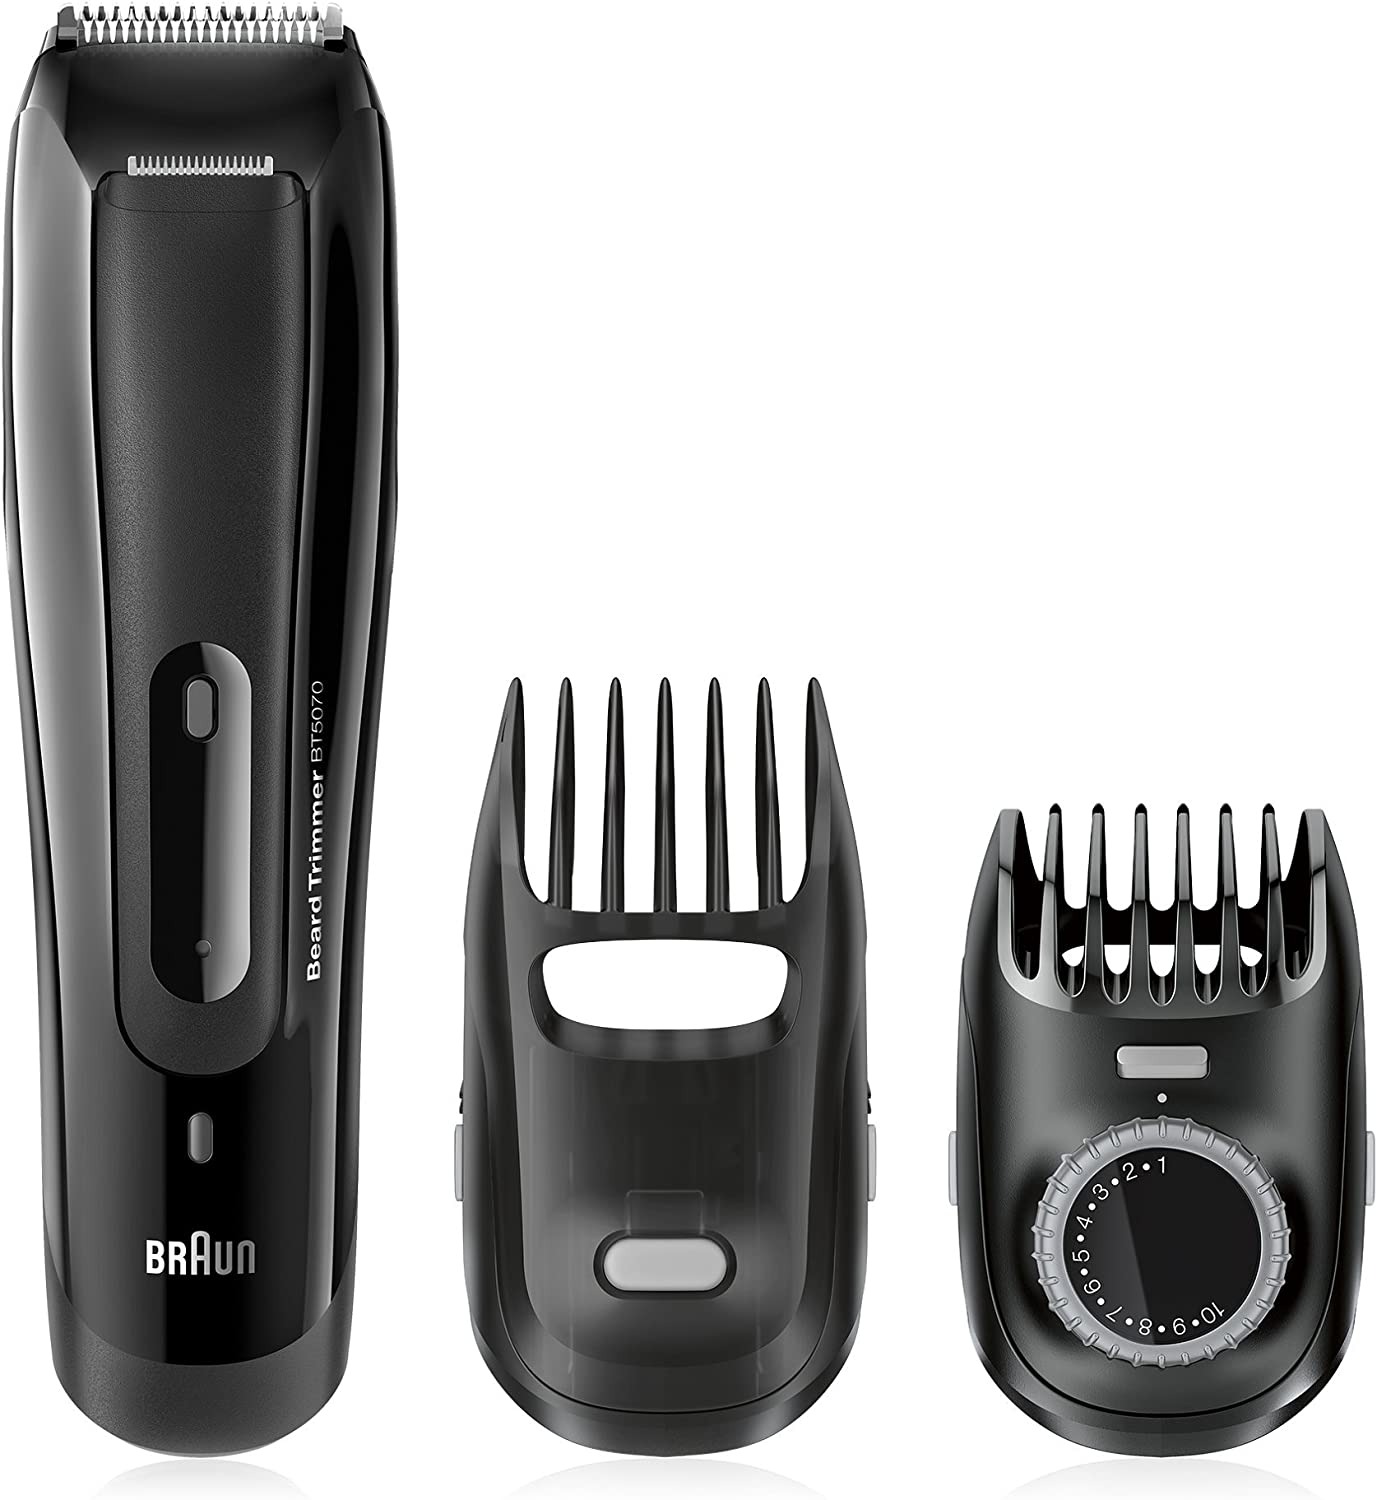 Braun Cordless and Rechargeable Beard Trimmer for Men at Rs.1999